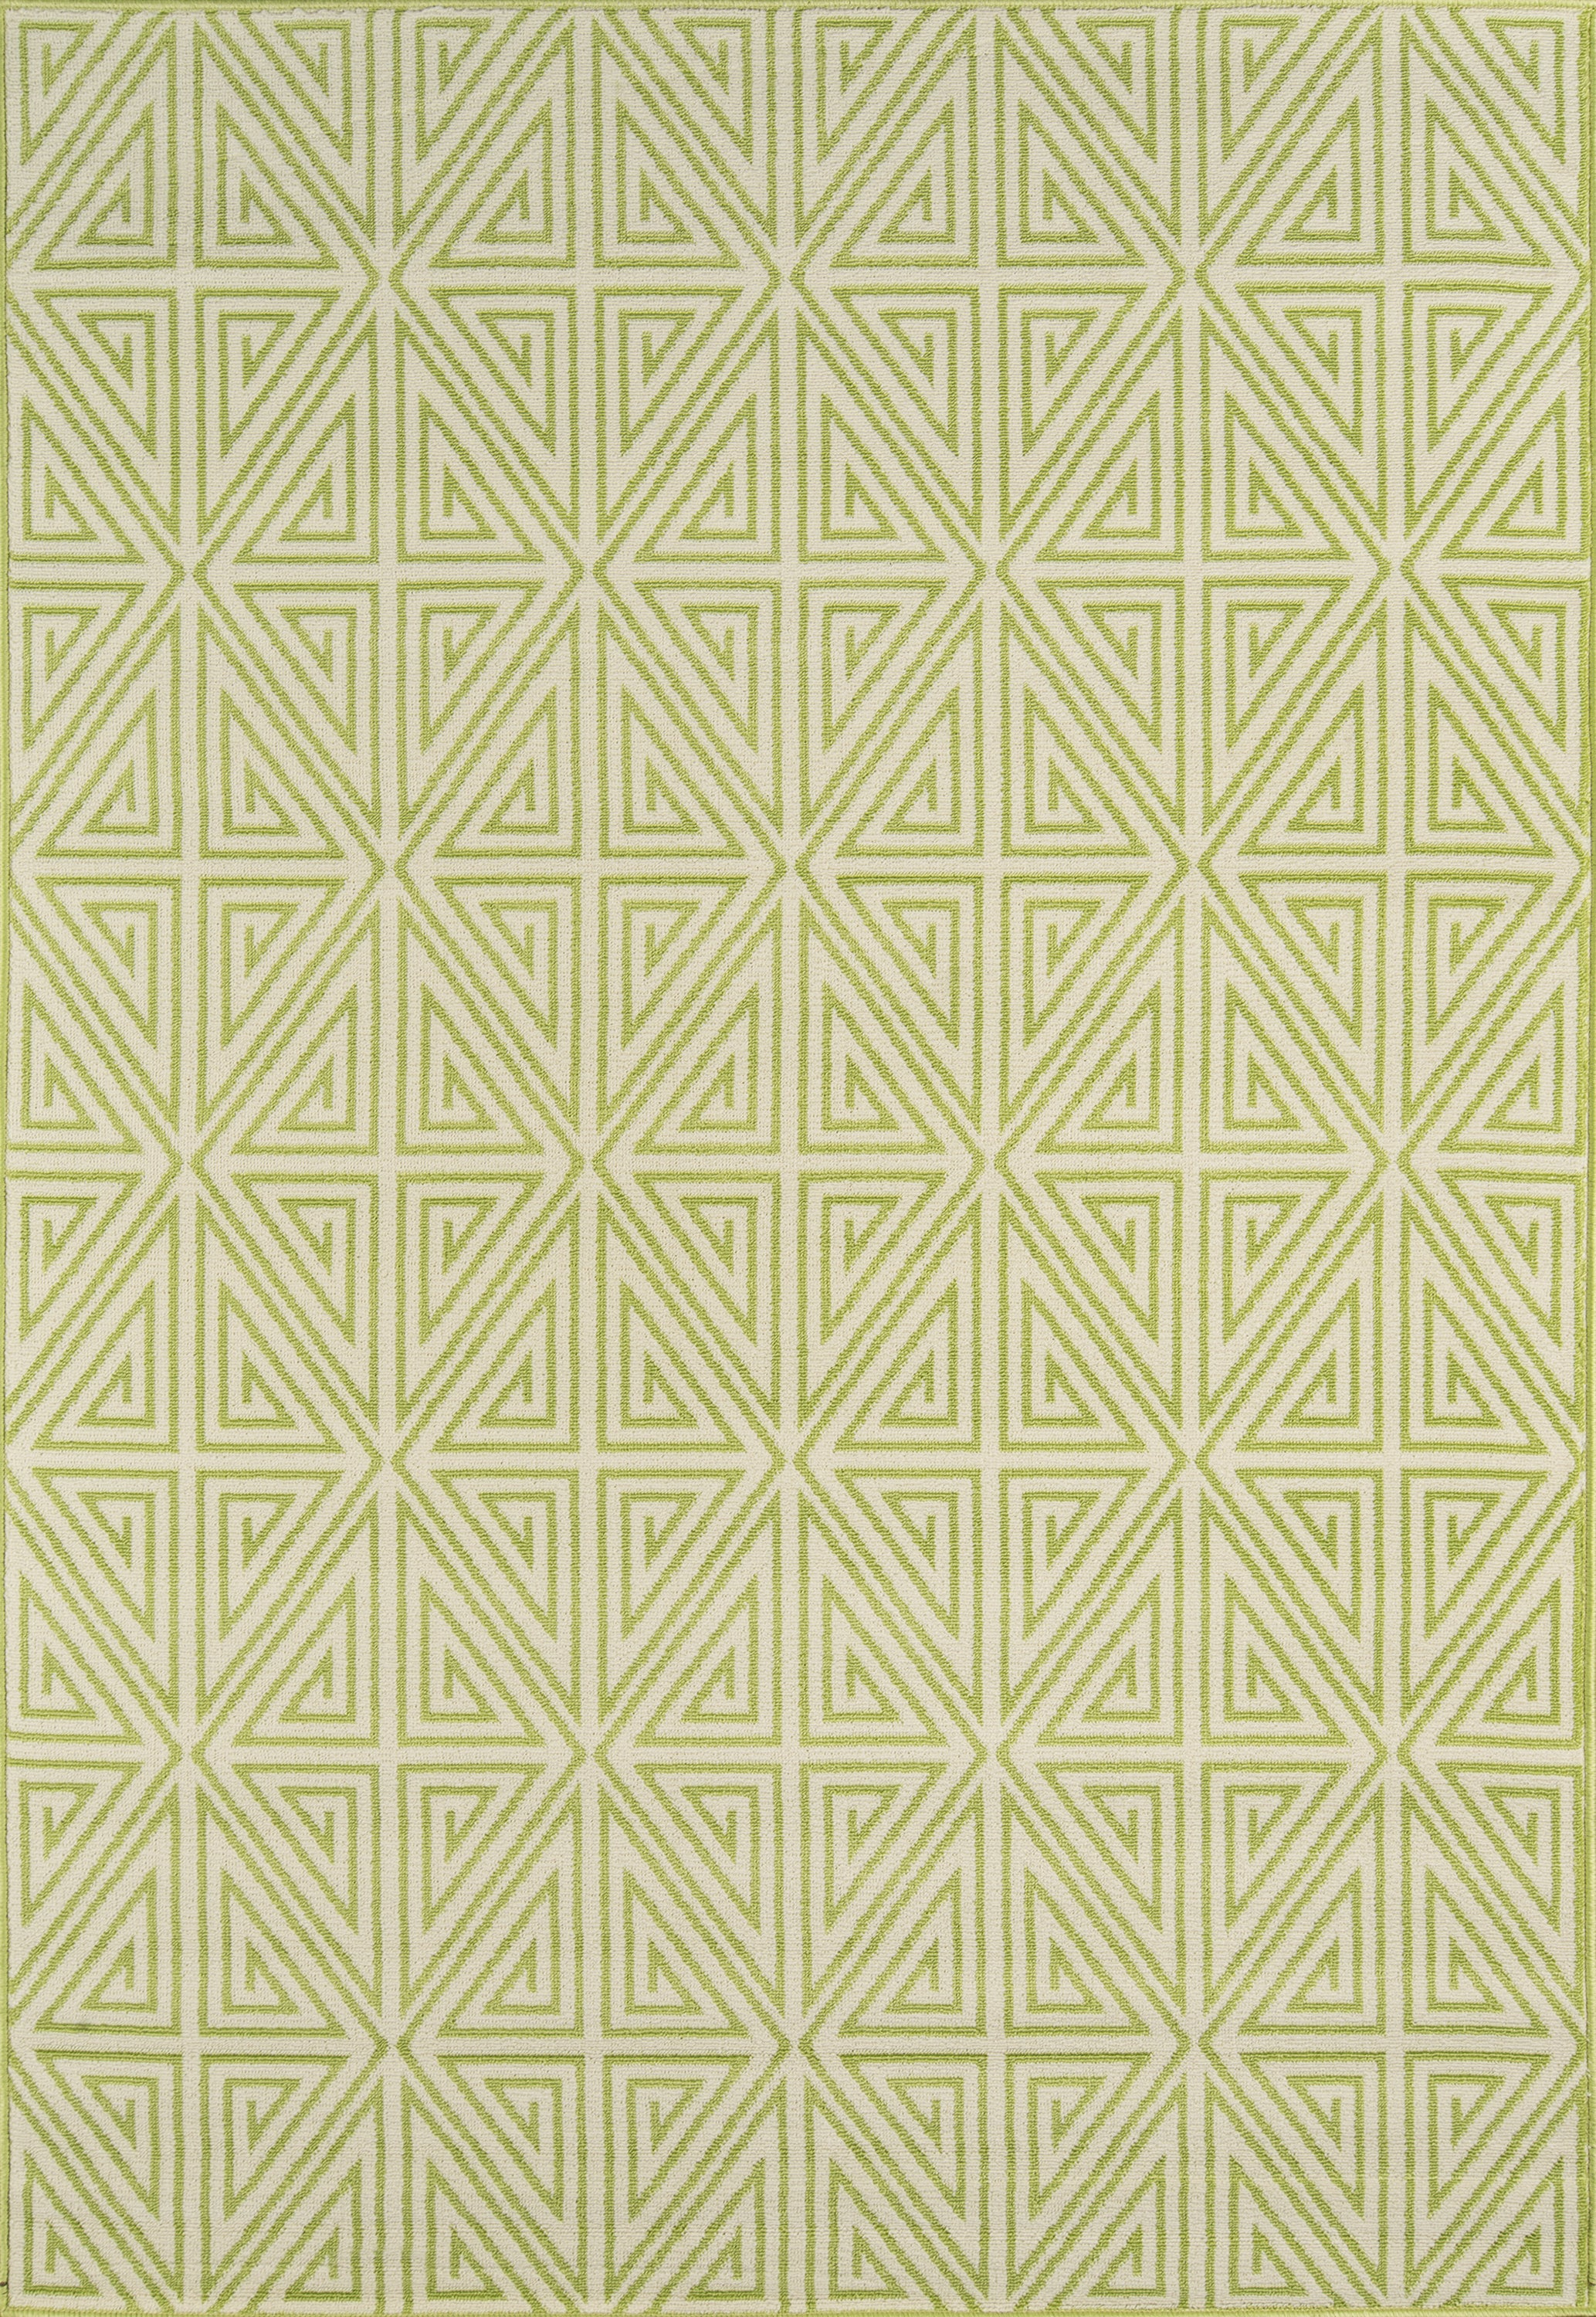 Rectangle 53x76 Green Geometric Machine Made Synthetics Contemporary recommended for Kitchen, Bedroom, Bathroom, Outdoor, Dining Room, Office, Hallway, Living Room